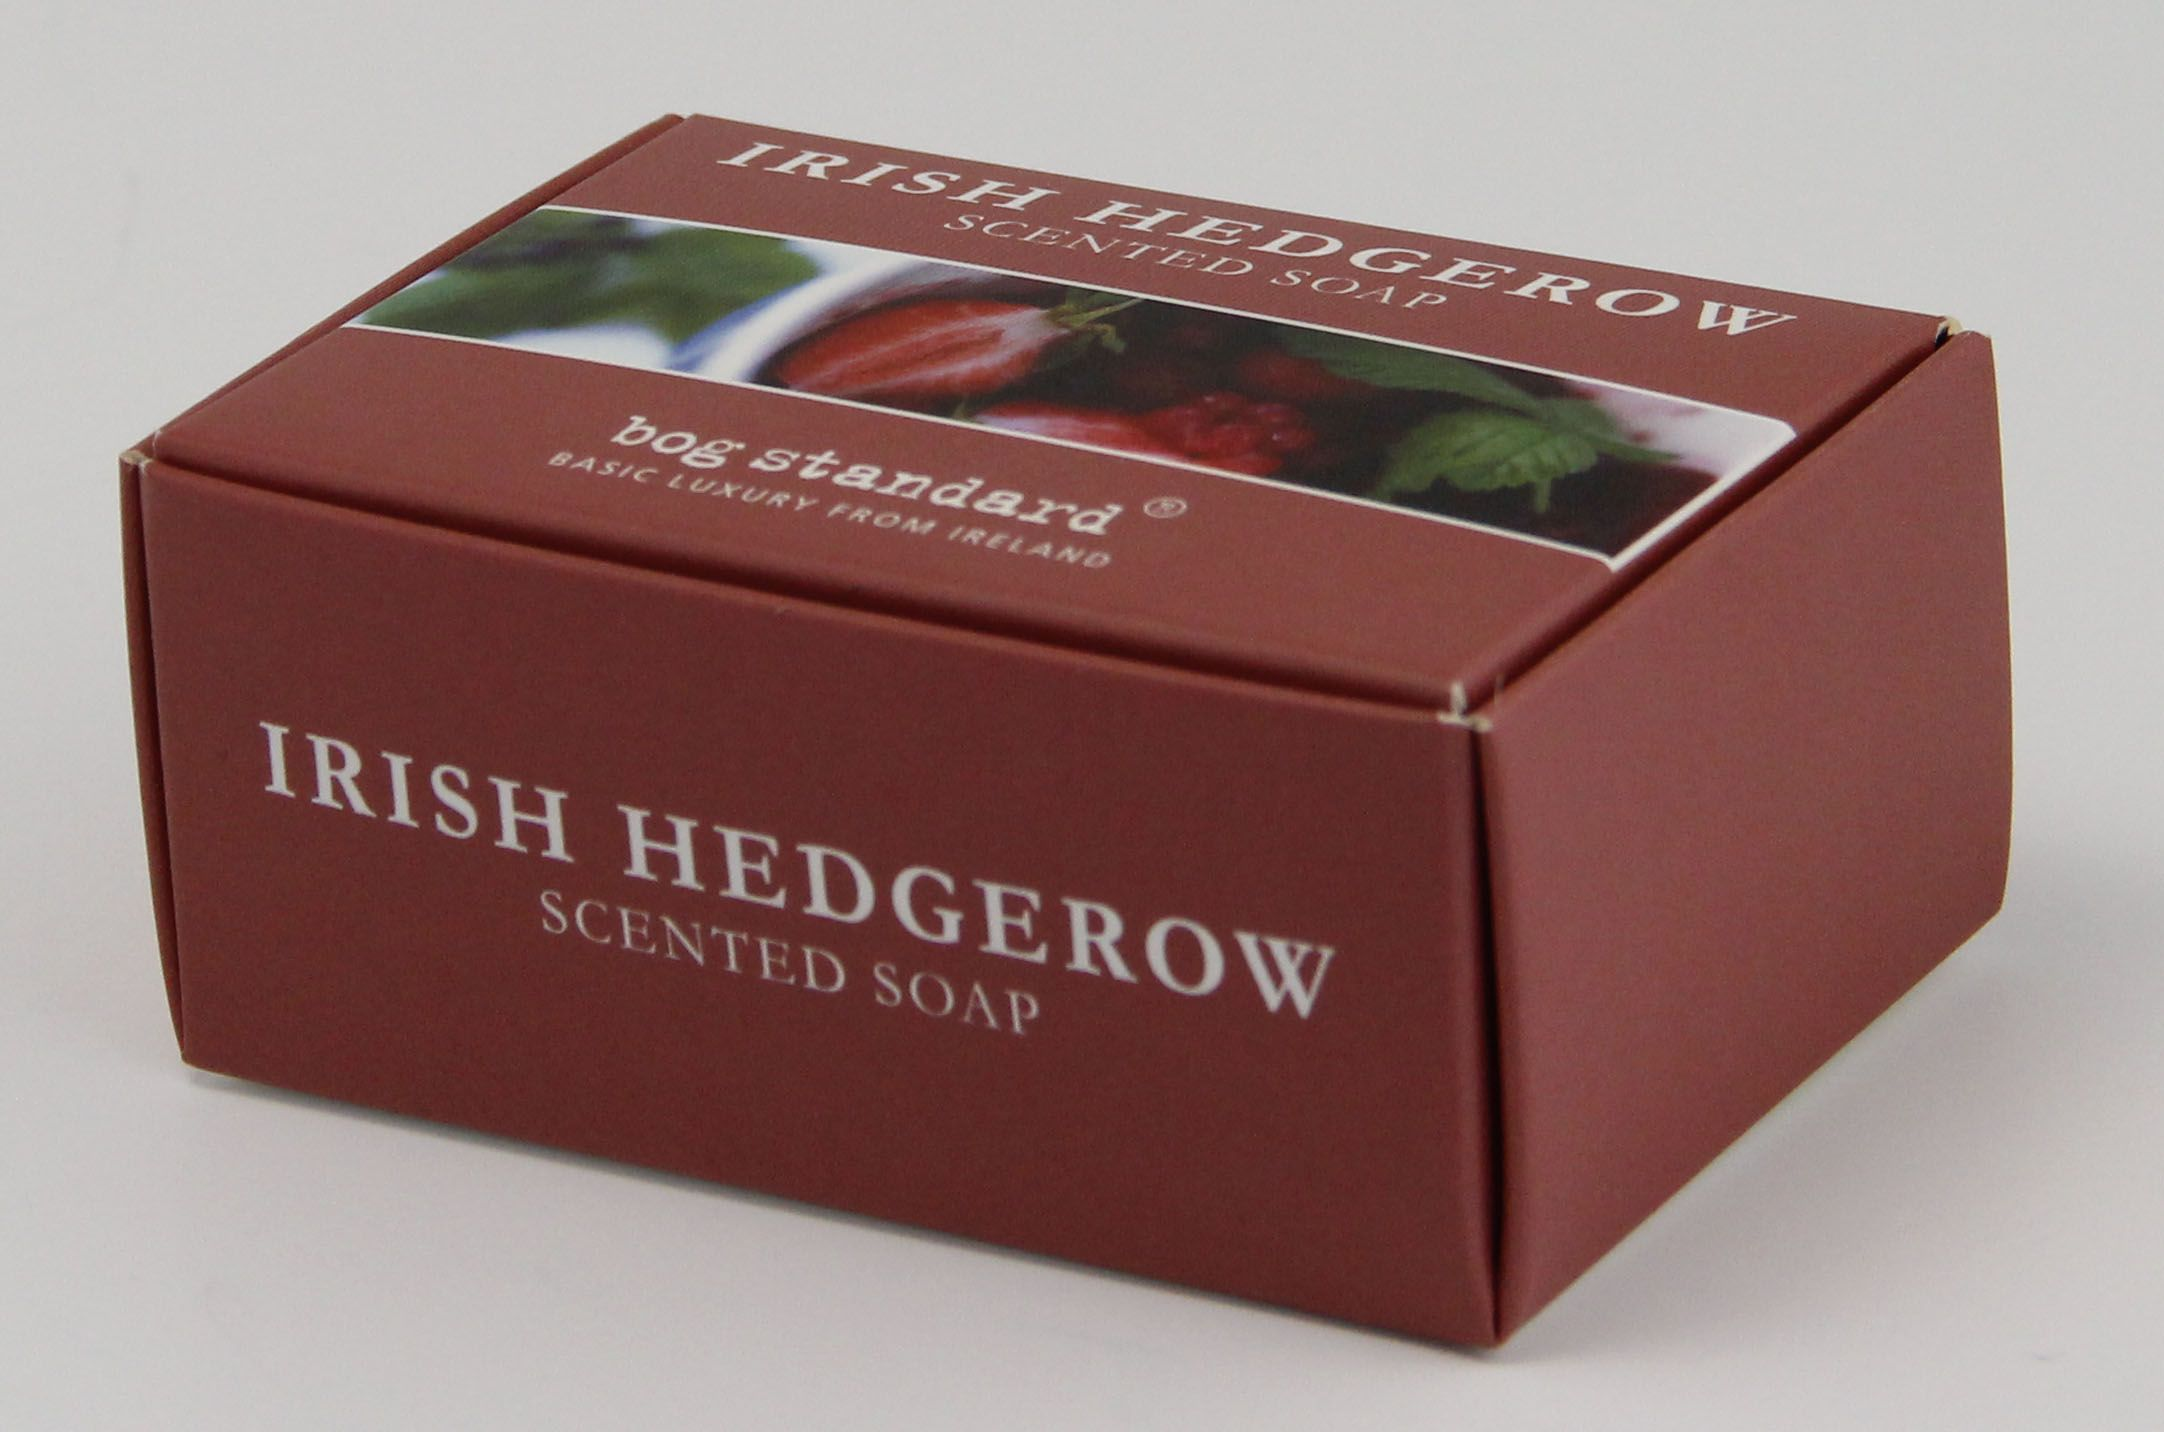 Soap box for Irish Hedgerow created by Priory Press Packaging www.priorypresspackaging.co.uk